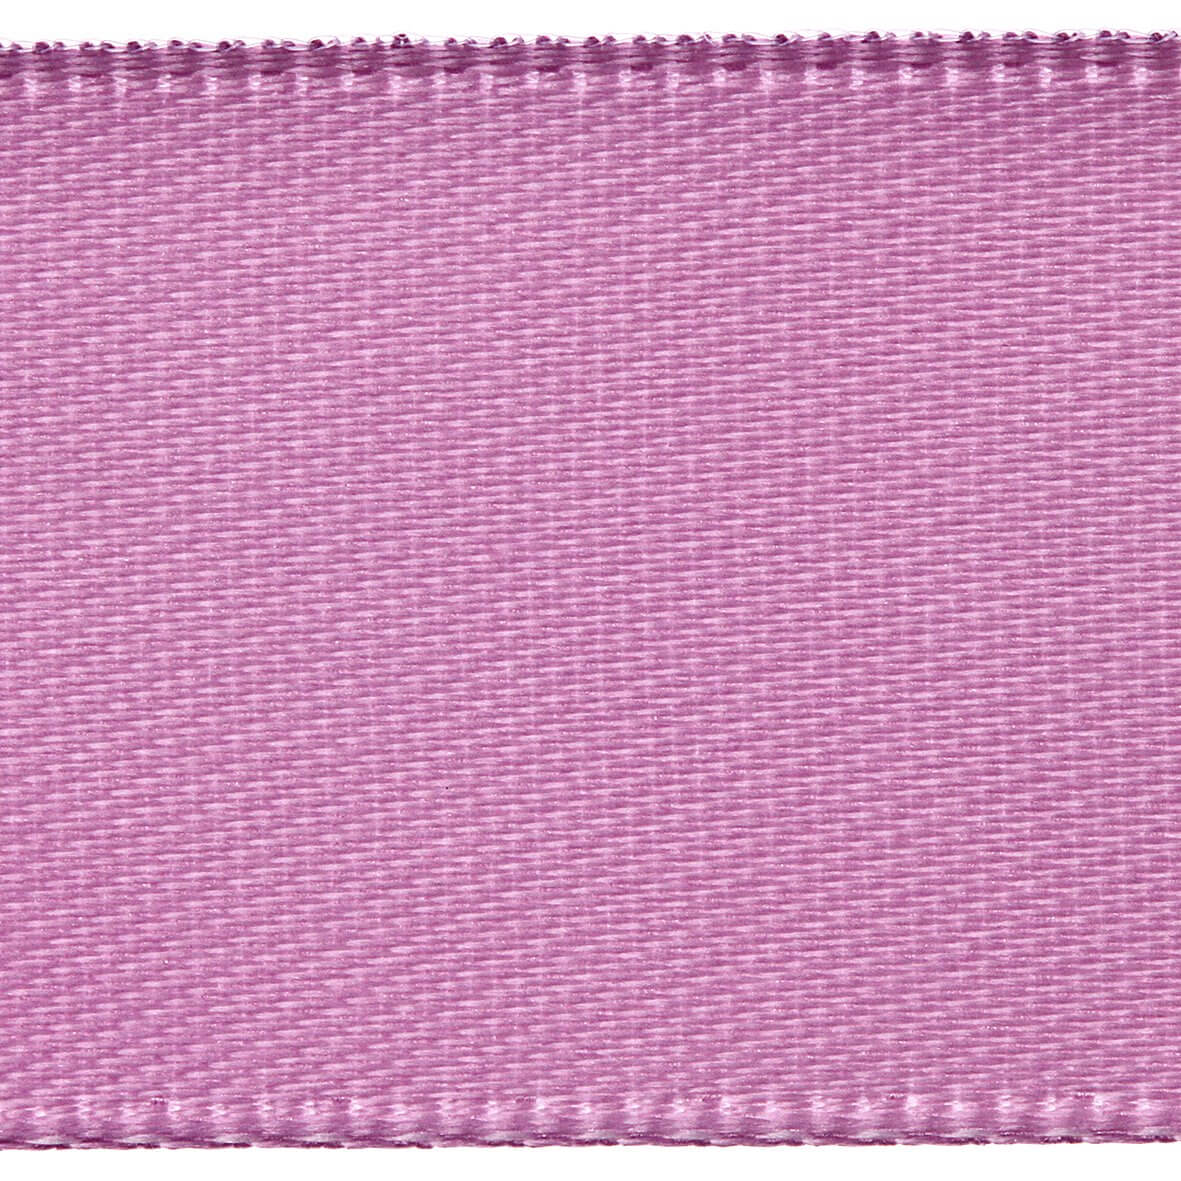 Lilac Pink Club Green 23mm Double Faced Satin Ribbon